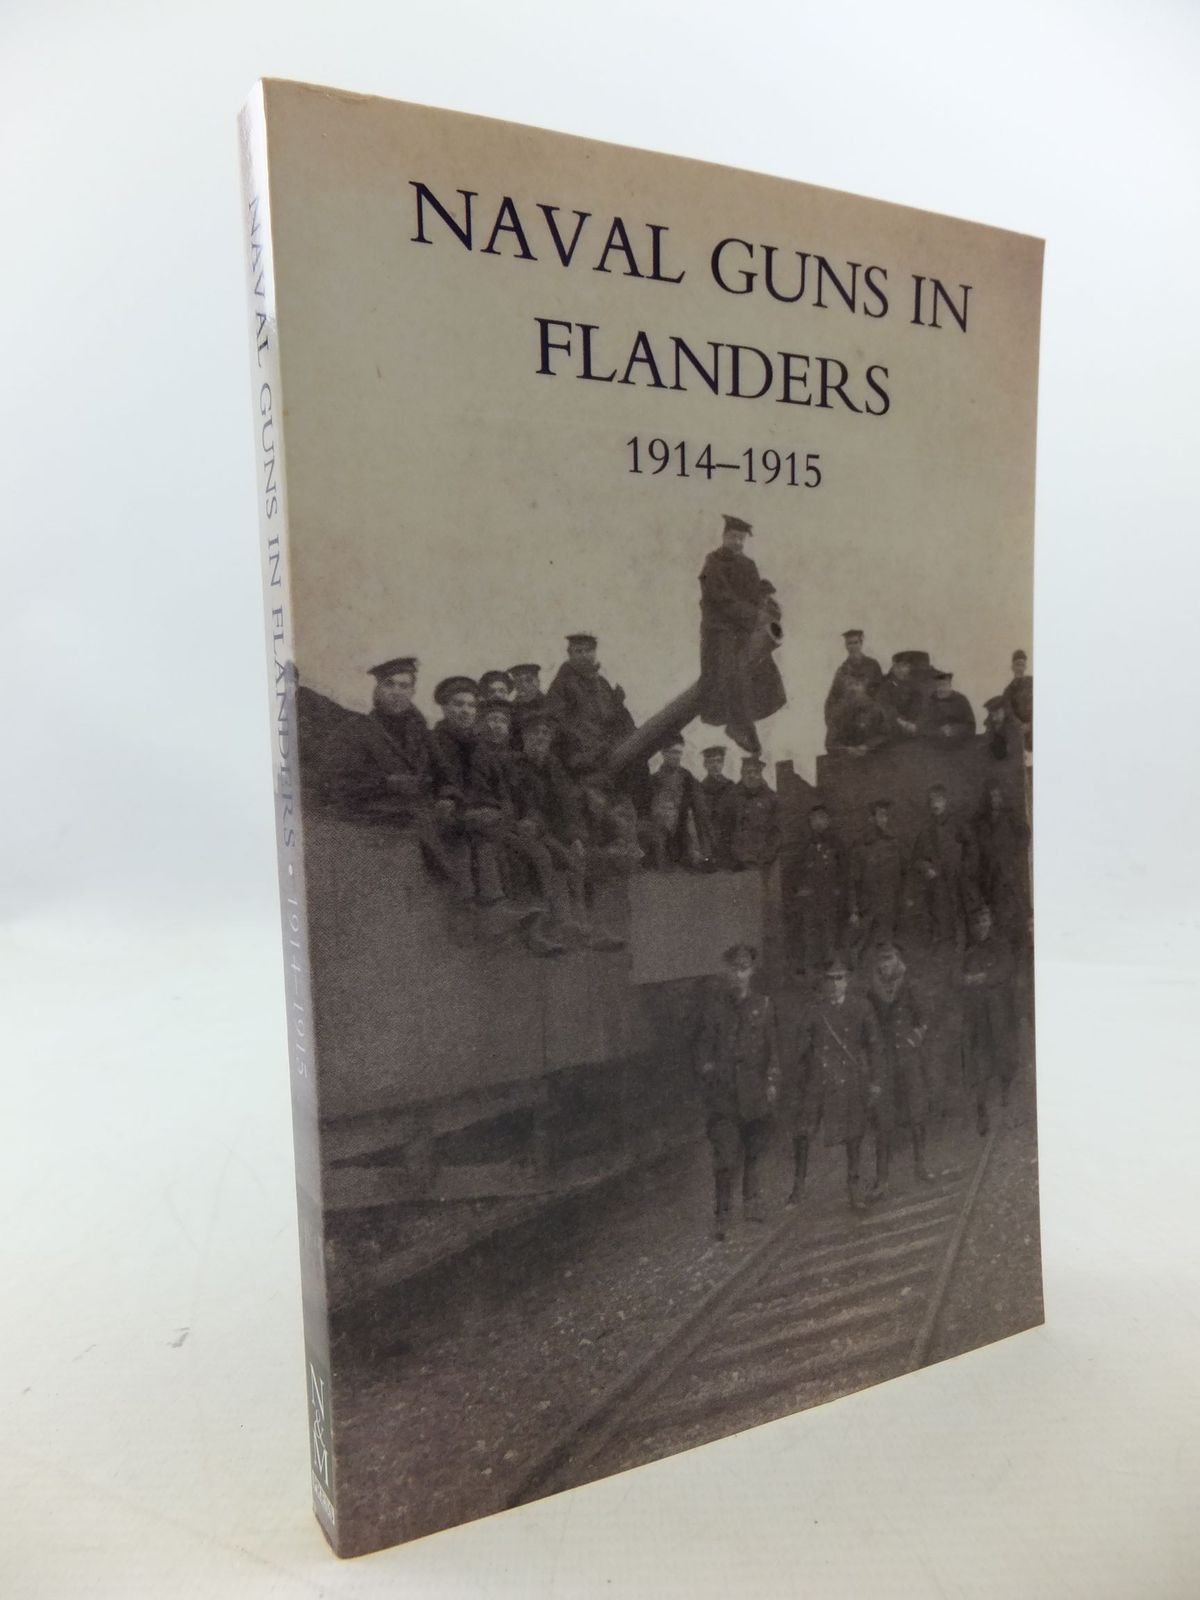 Photo of NAVAL GUNS IN FLANDERS 1914-1915 written by L.F.R., published by The Naval & Military Press Ltd. (STOCK CODE: 1710070)  for sale by Stella & Rose's Books